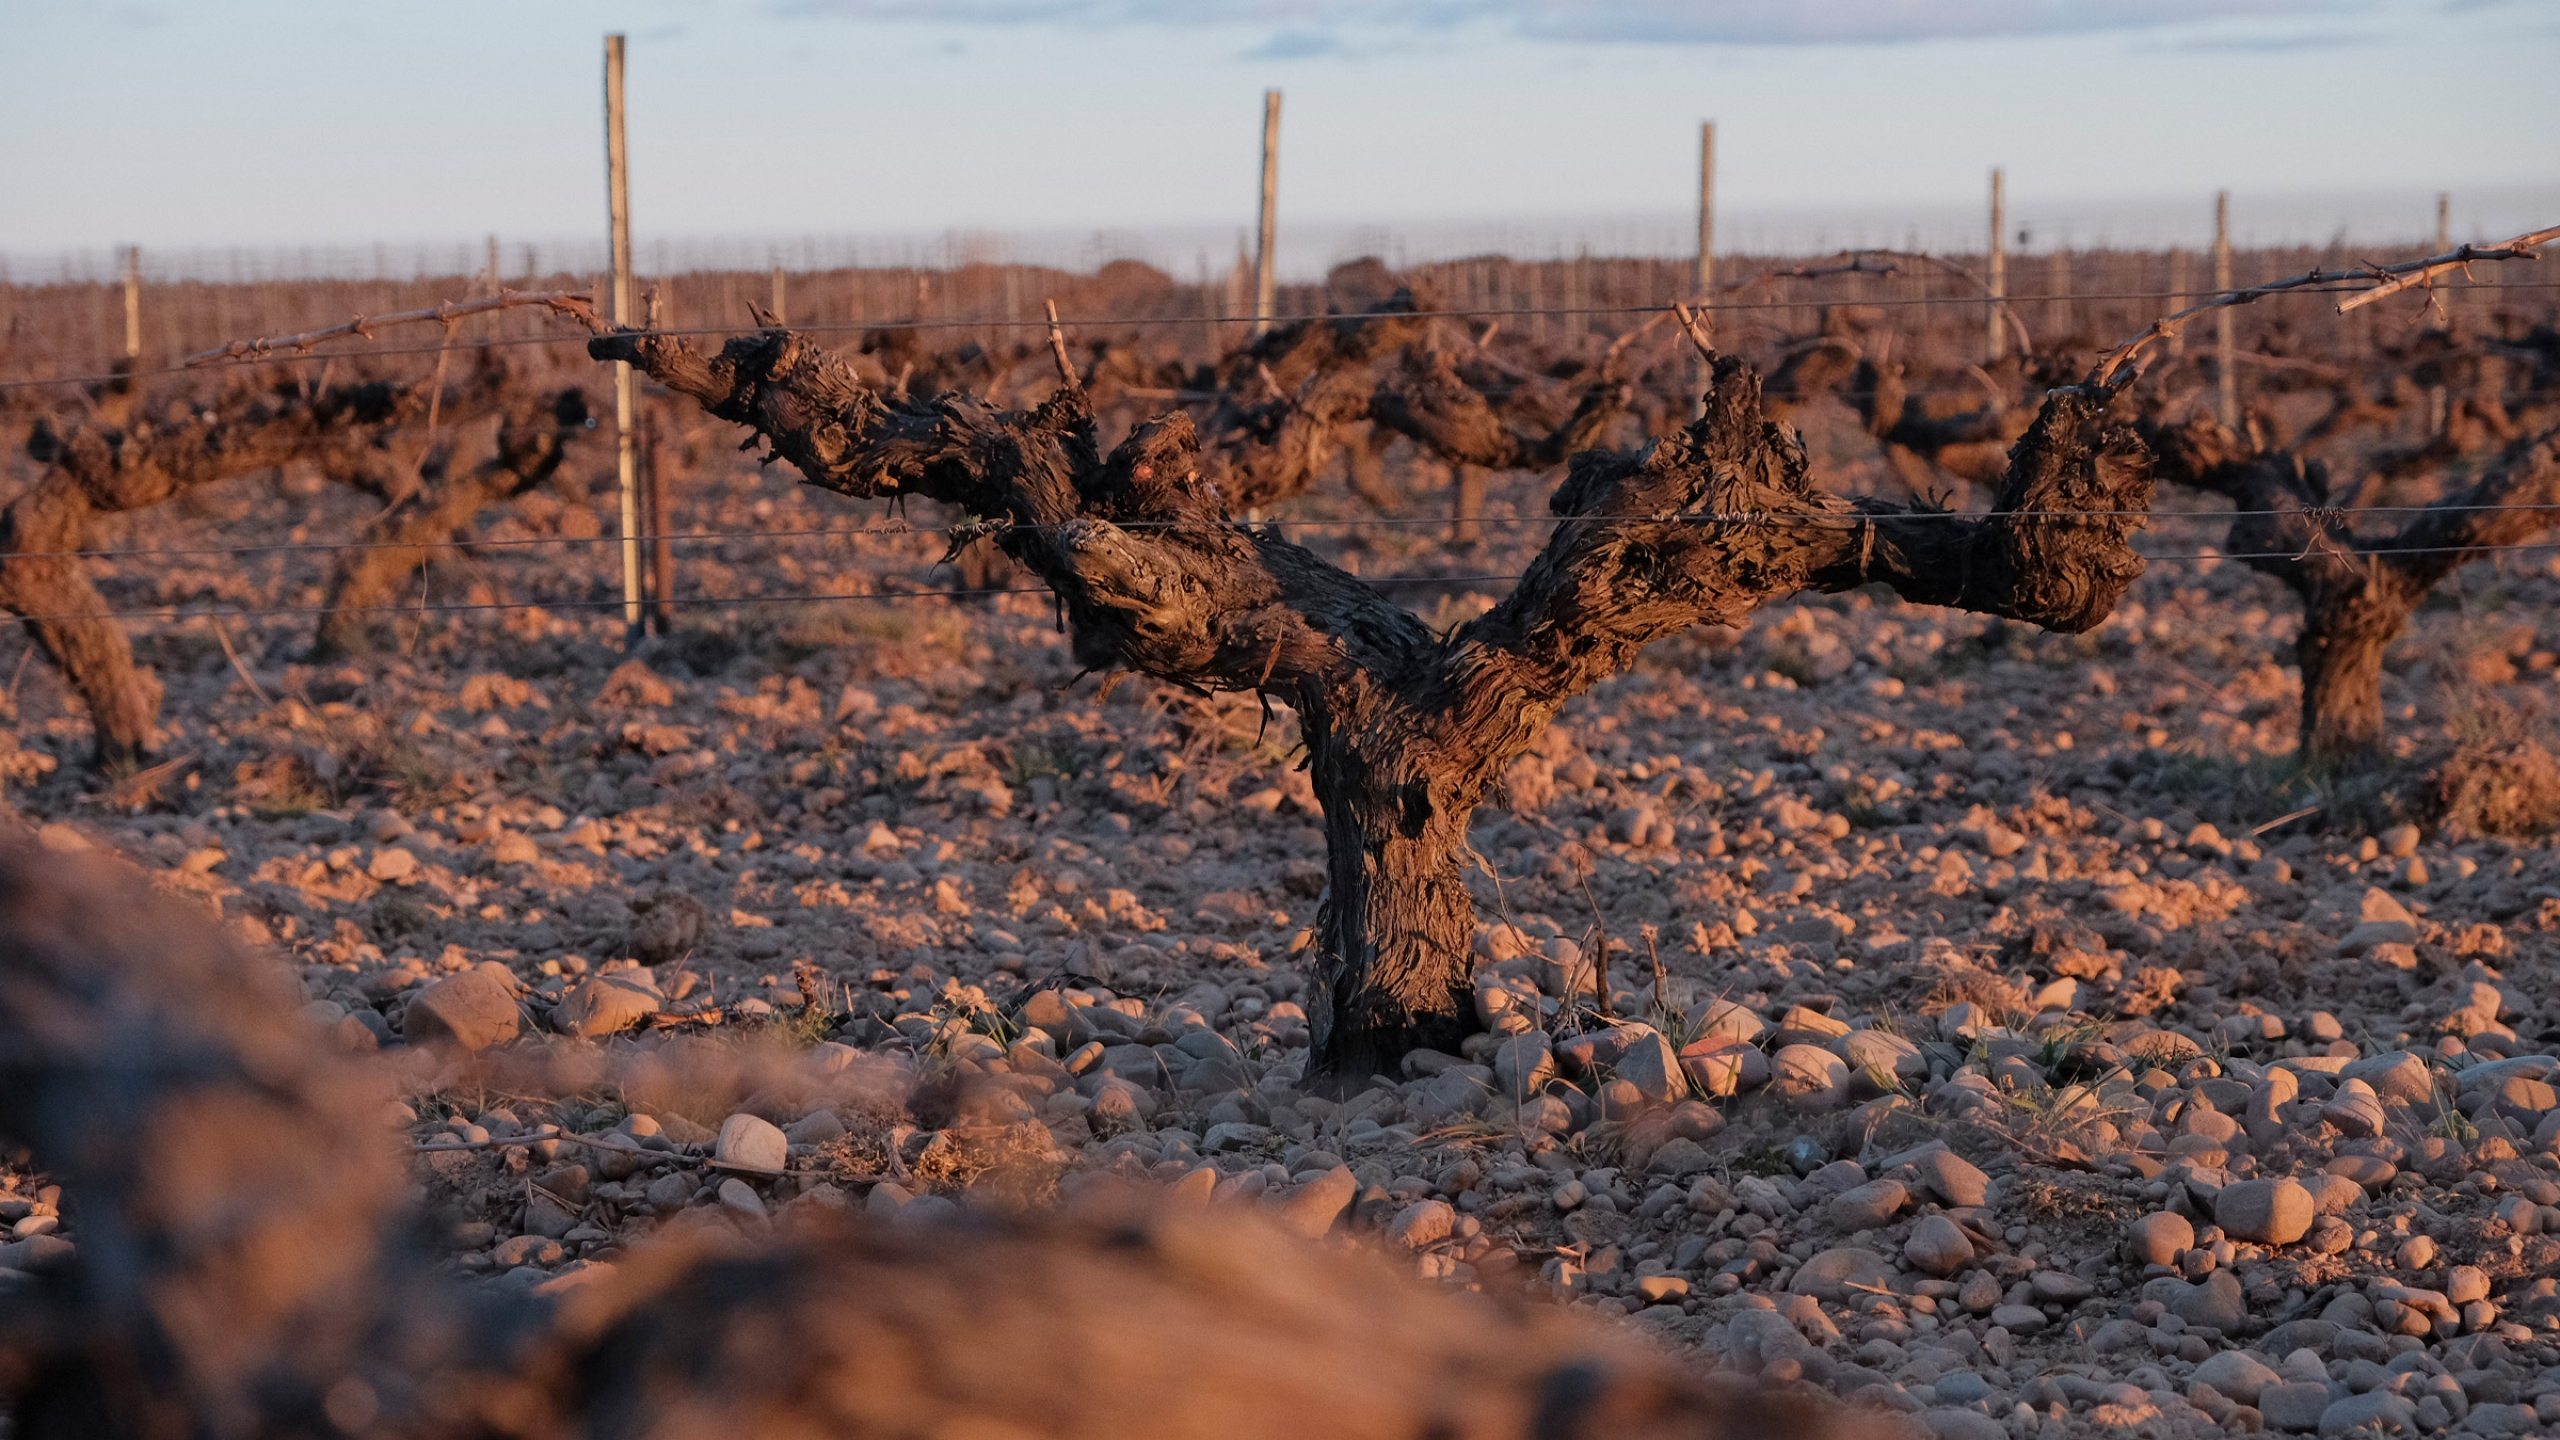 The Terroir First things first